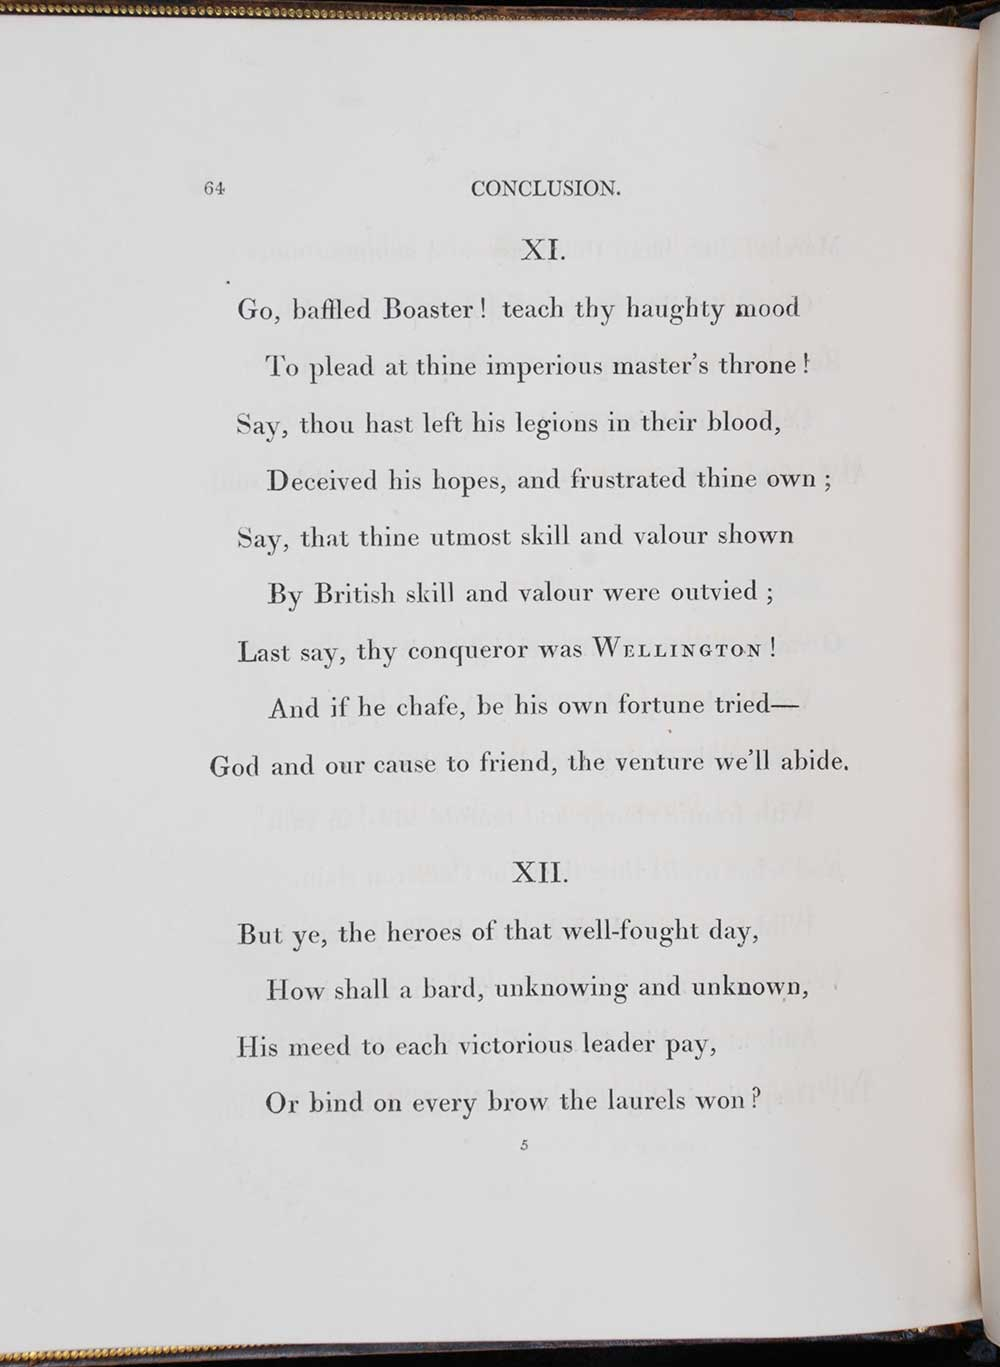 Sir Walter Scott. <em>The vision of Don Roderick: a poem.</em> [1st edition]. Edinburgh: Printed by James Ballantyne and Co. for John Ballantyne and Co., Edinburgh; and Longman, Hurst, Rees, Orme, and Brown, London, 1811.